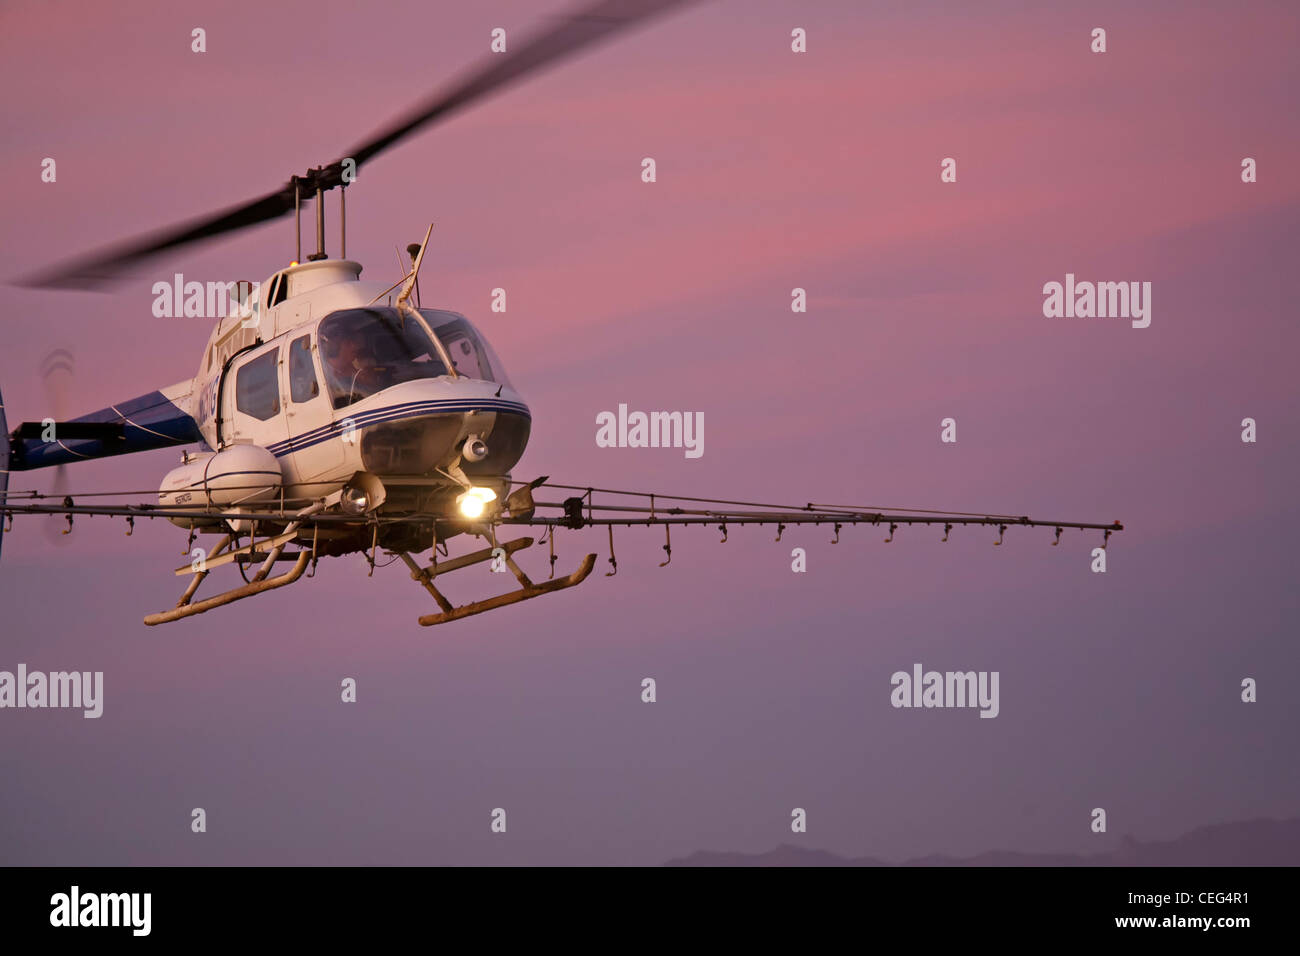 Holtville, California - A helicopter sprays a field in the Imperical Valley. Stock Photo